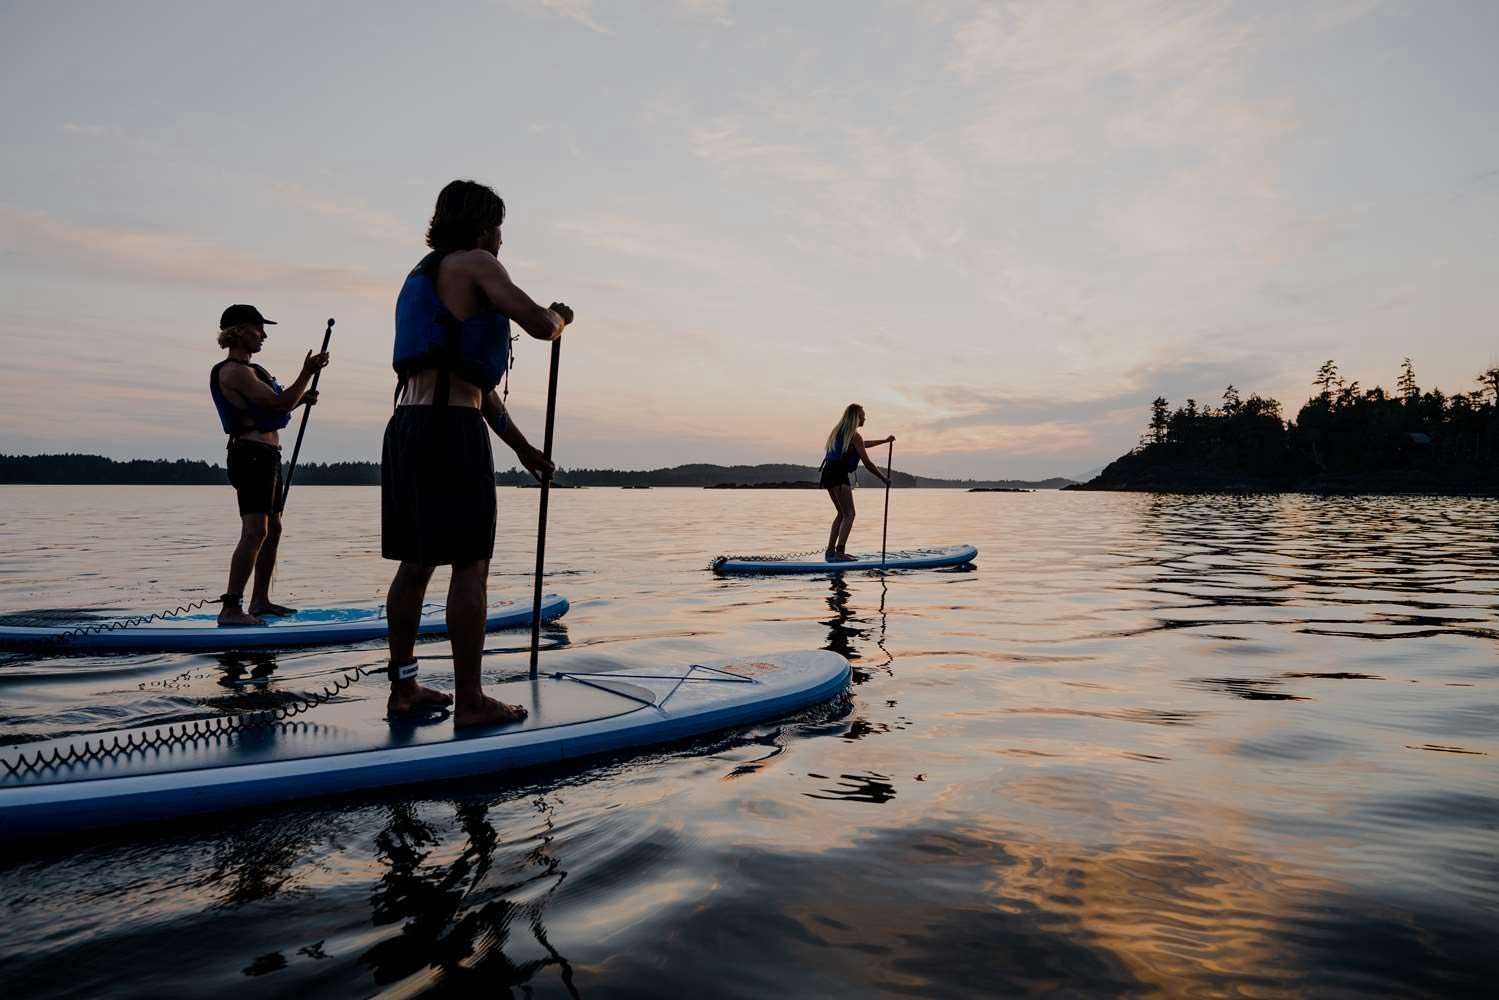 Paddleboarding on a yoga retreat in Tofino